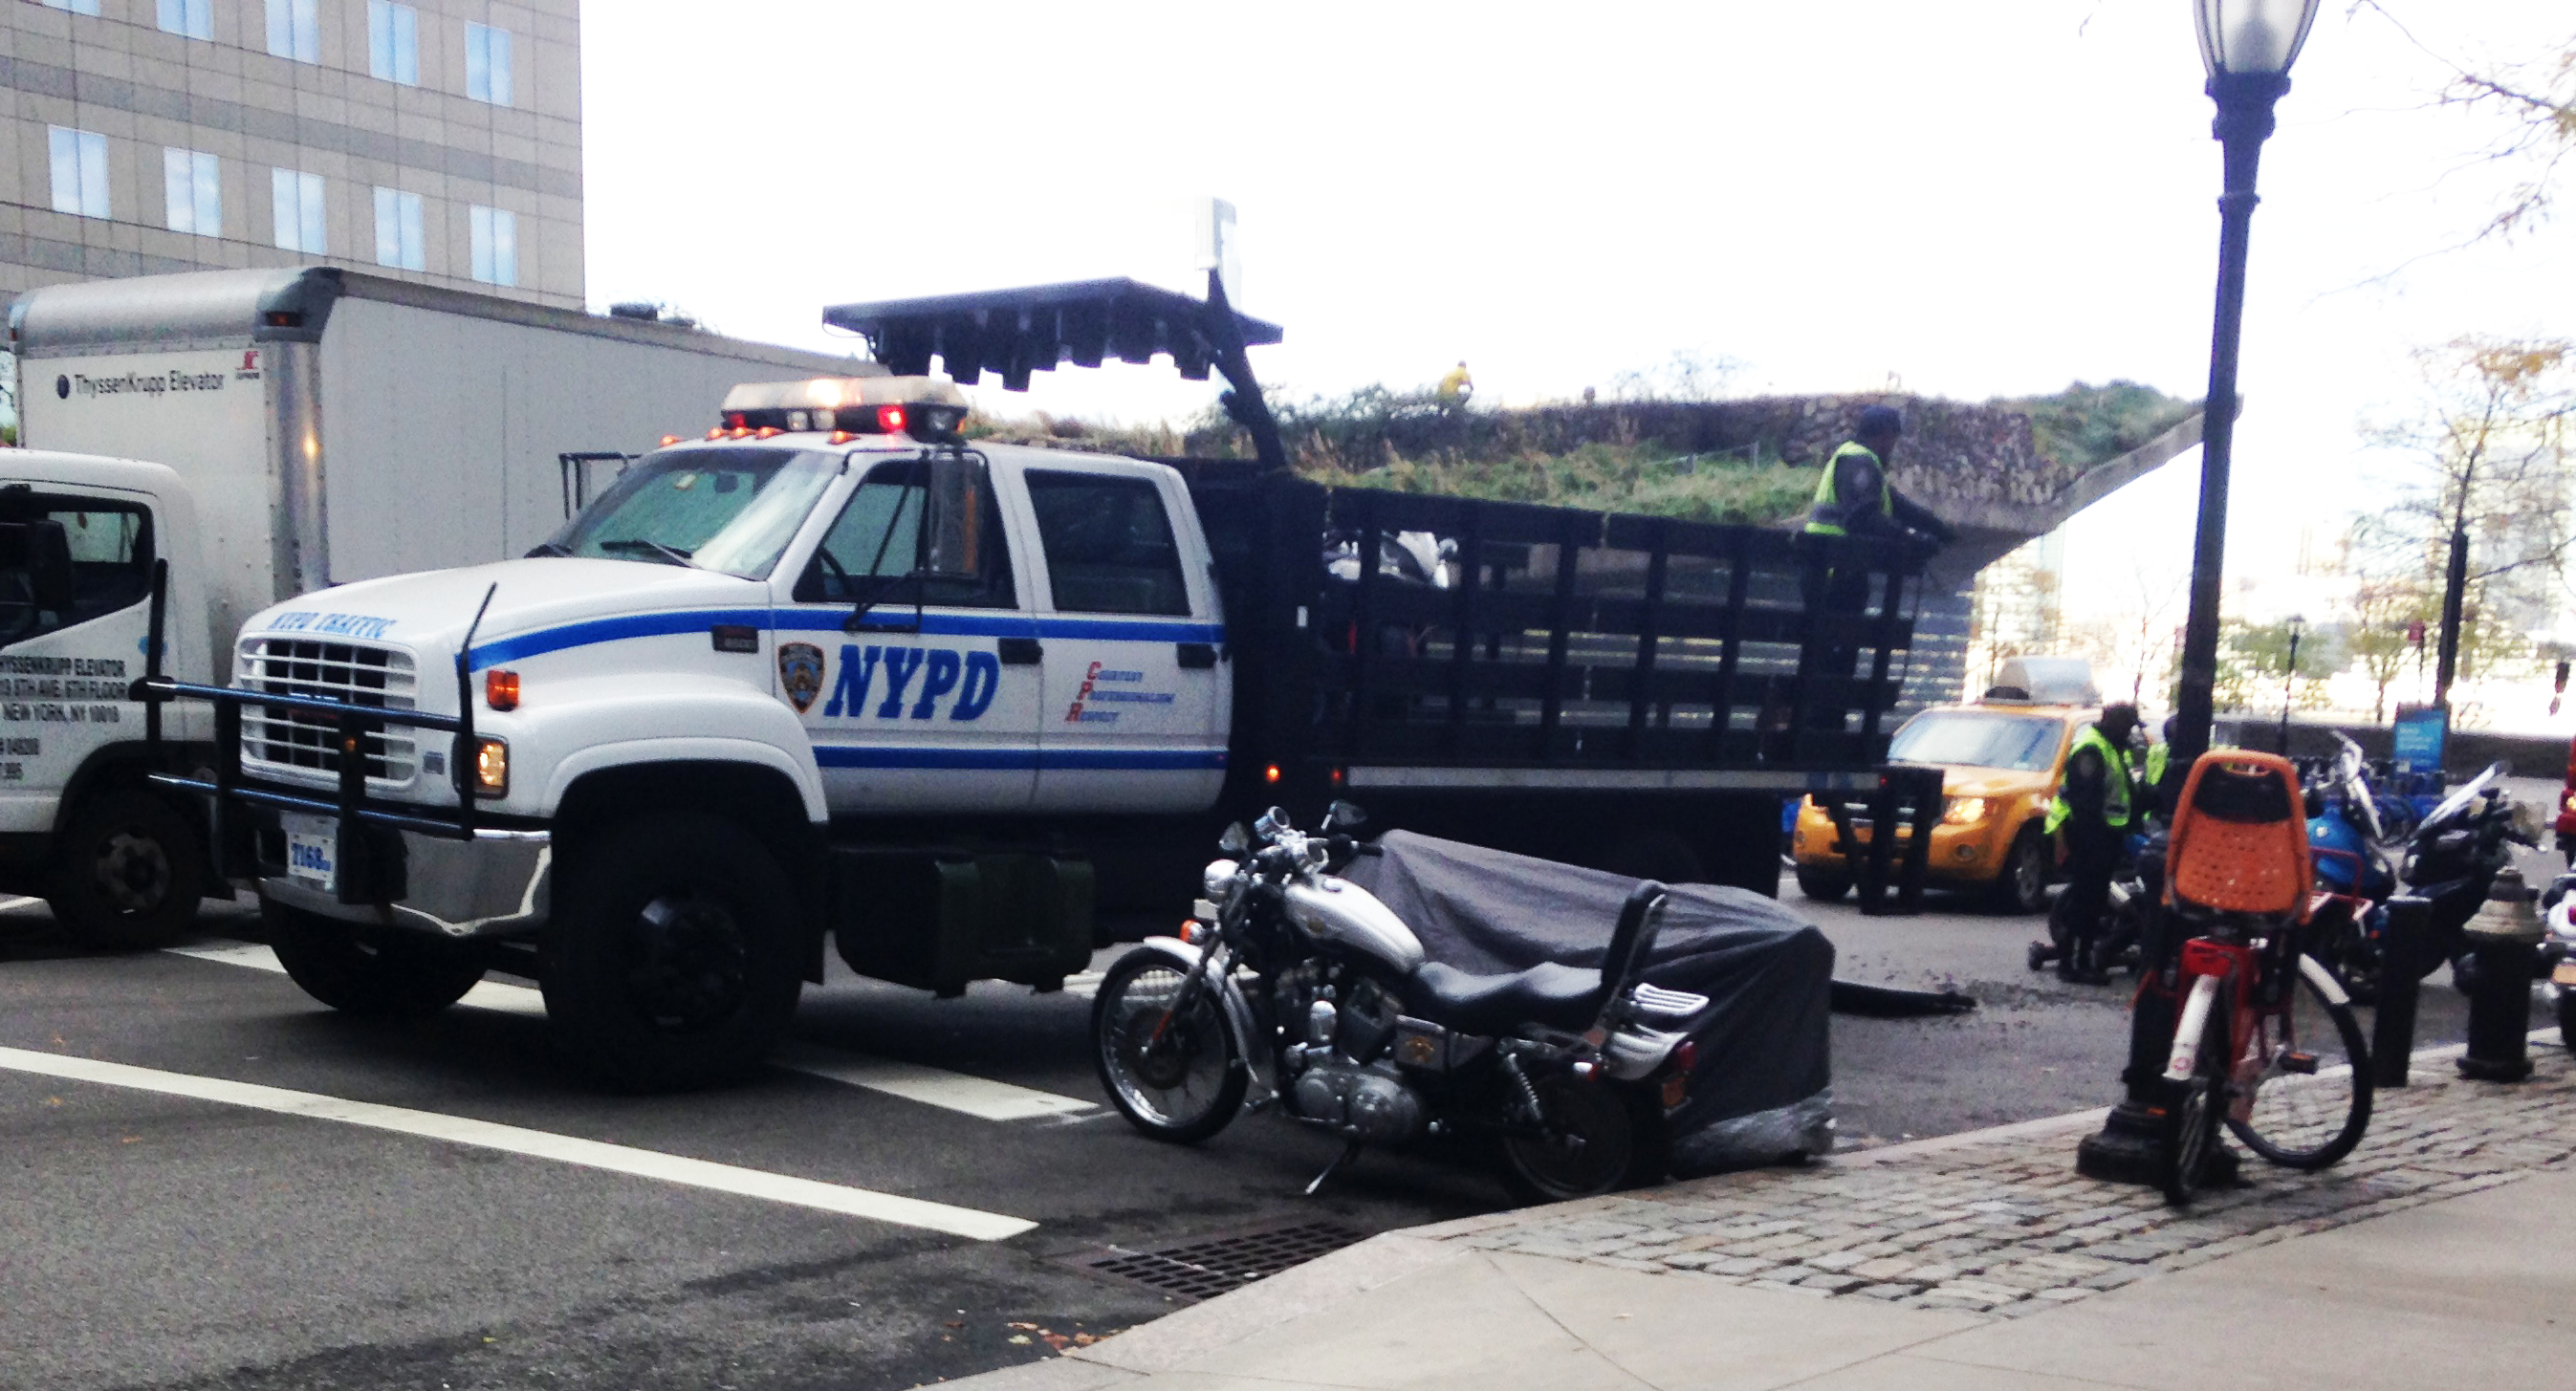 Motorcycles towed